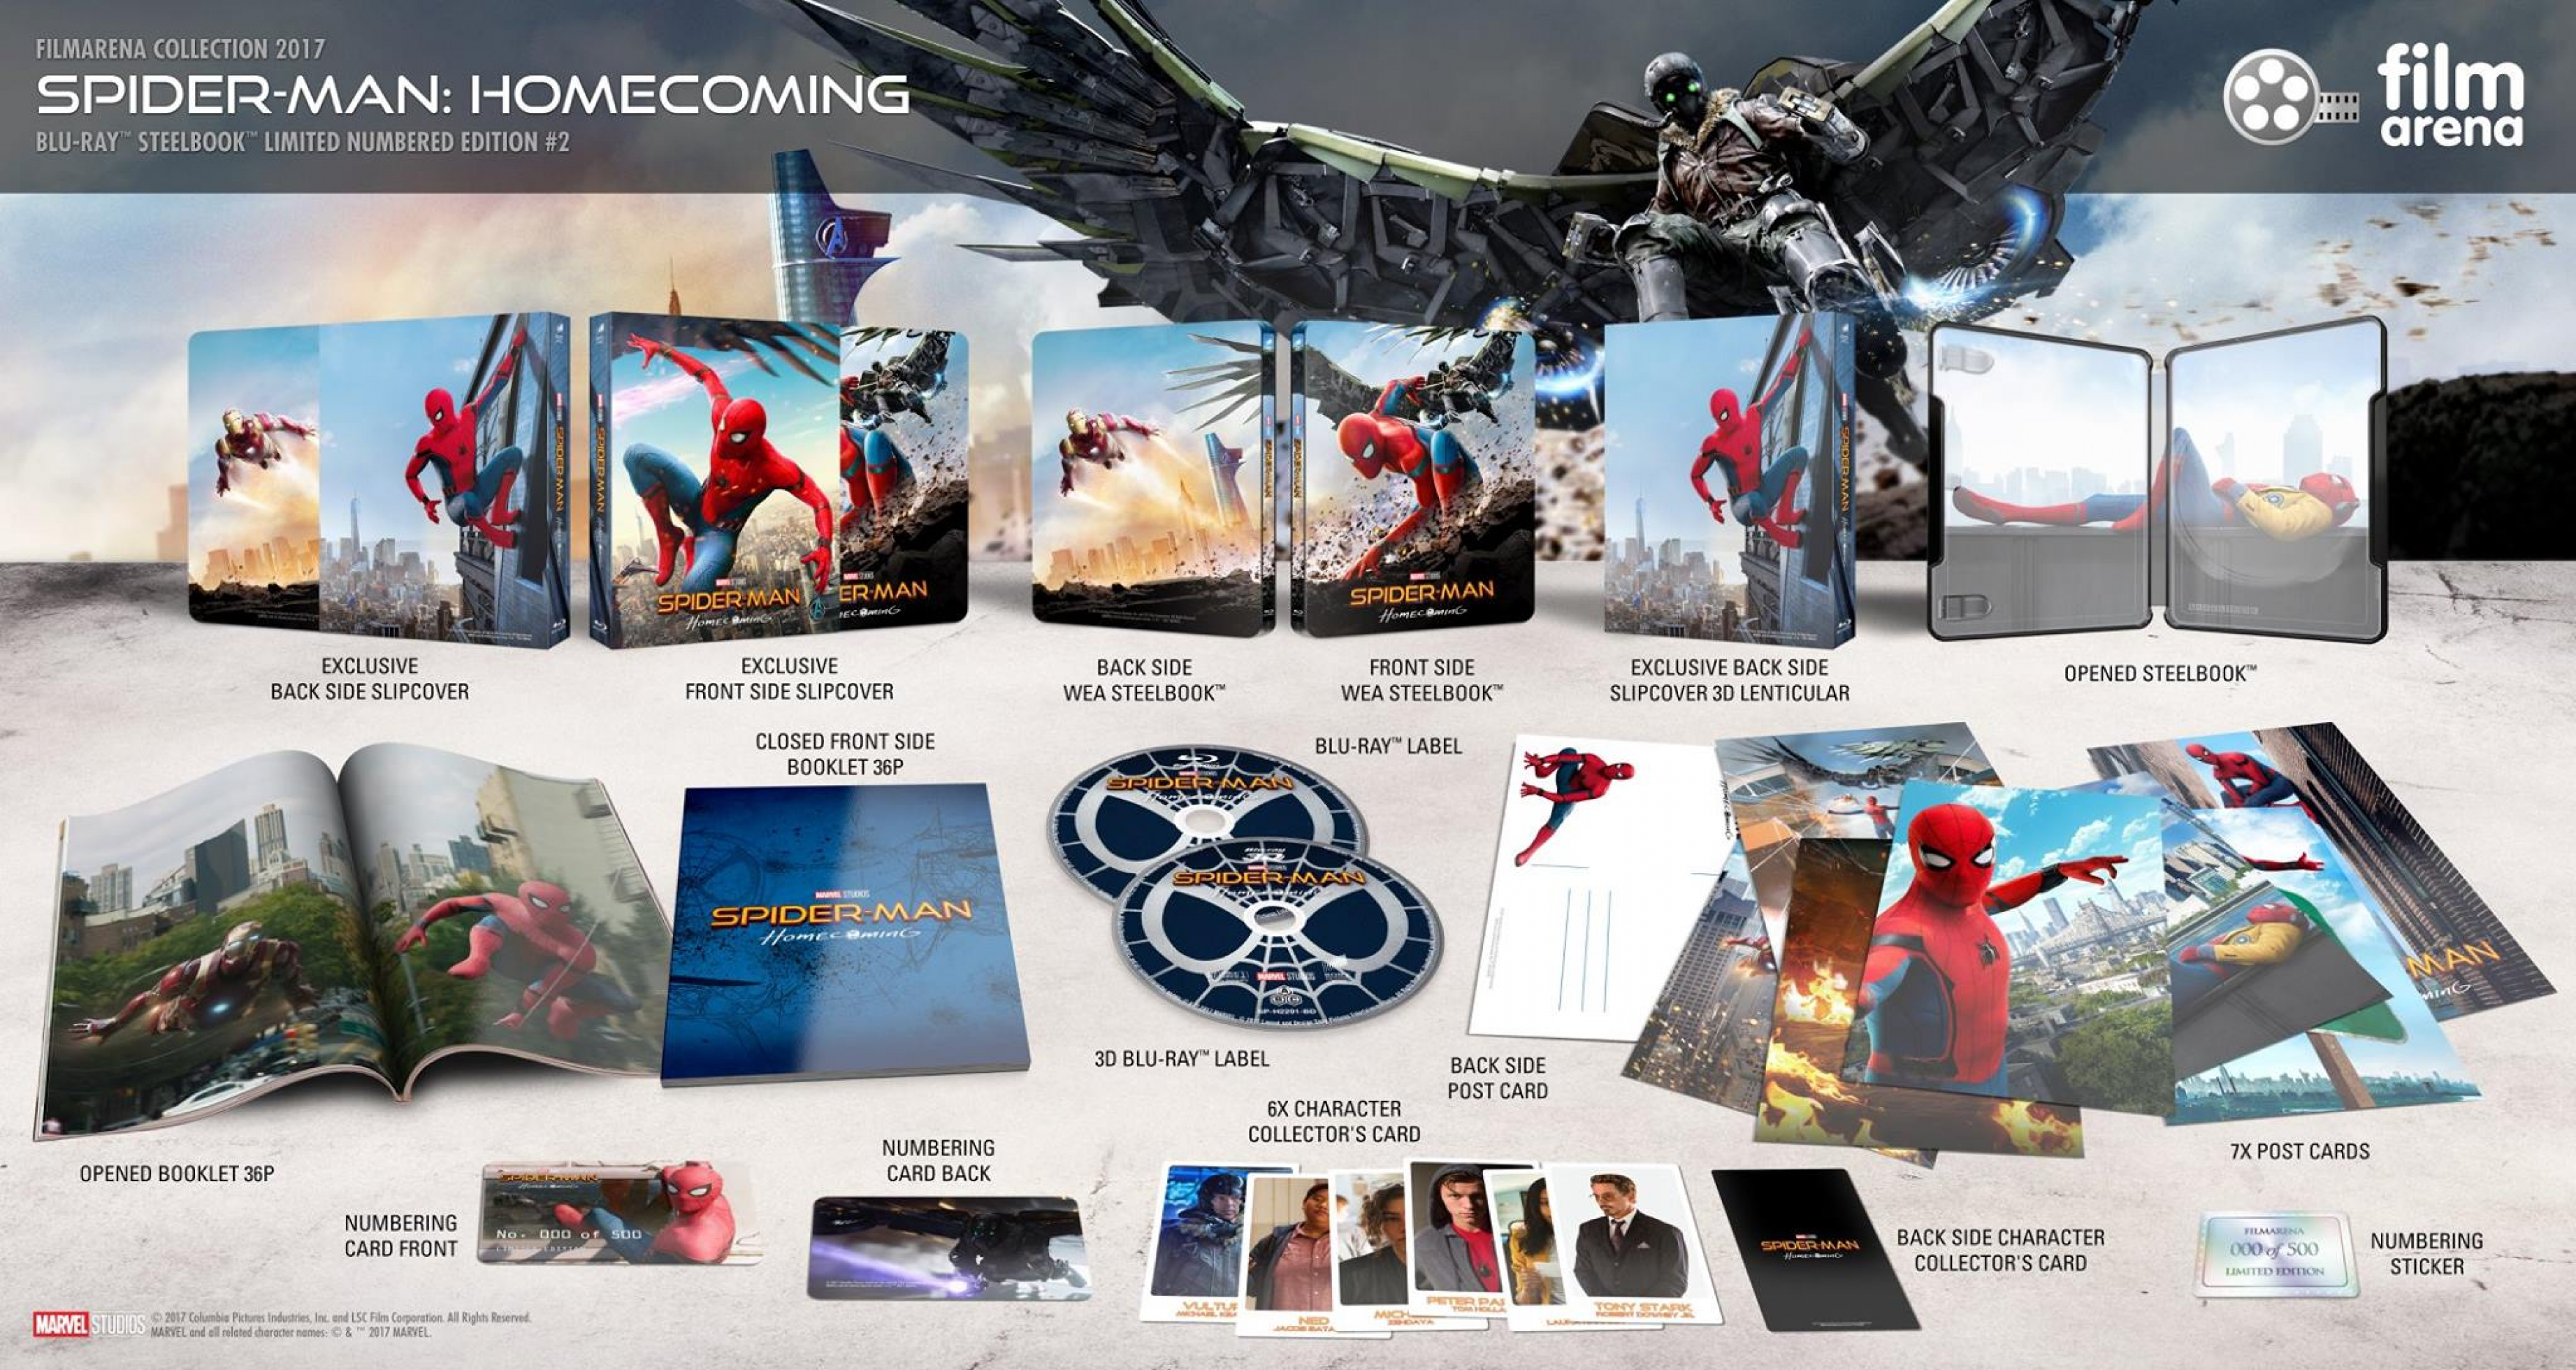 Spider-Man Homecoming 3D HD-Filmportal Edition 2 FAC Lenticularslip